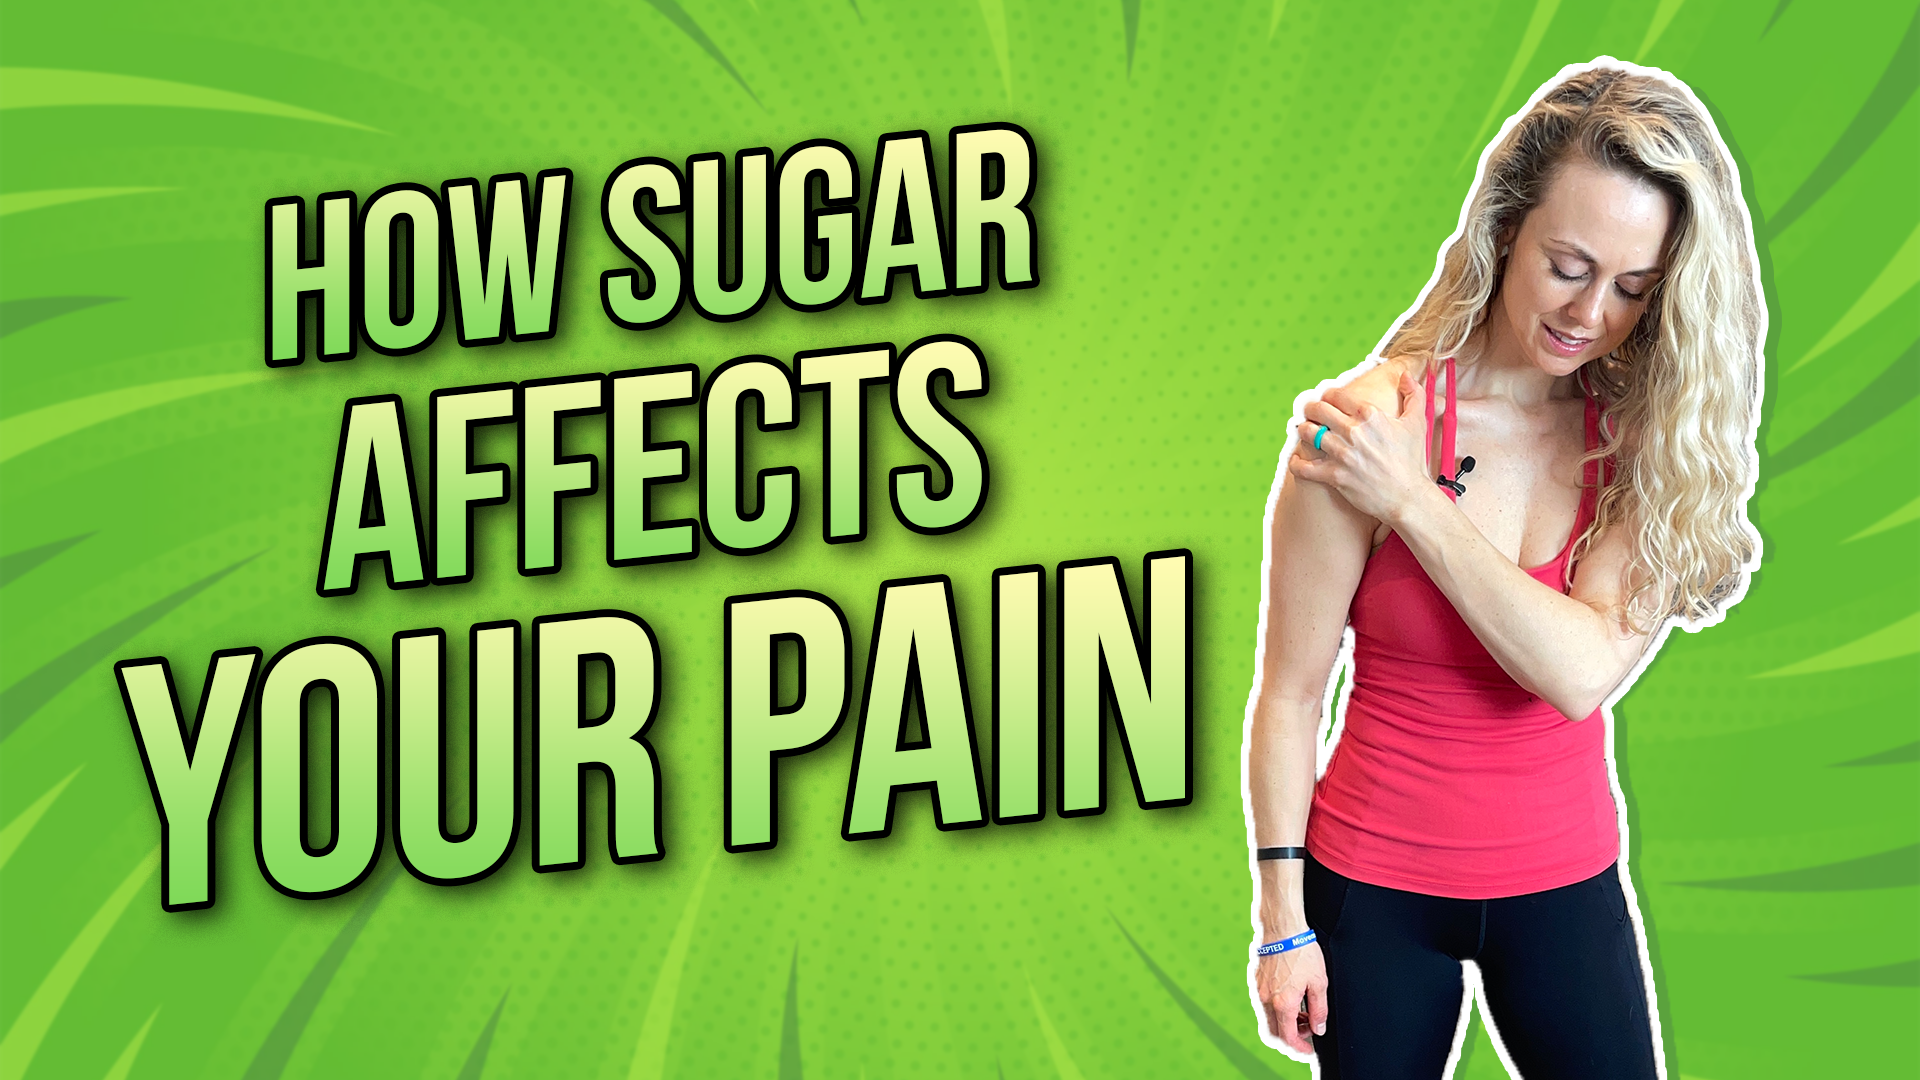 How Sugar Affects Your Pain